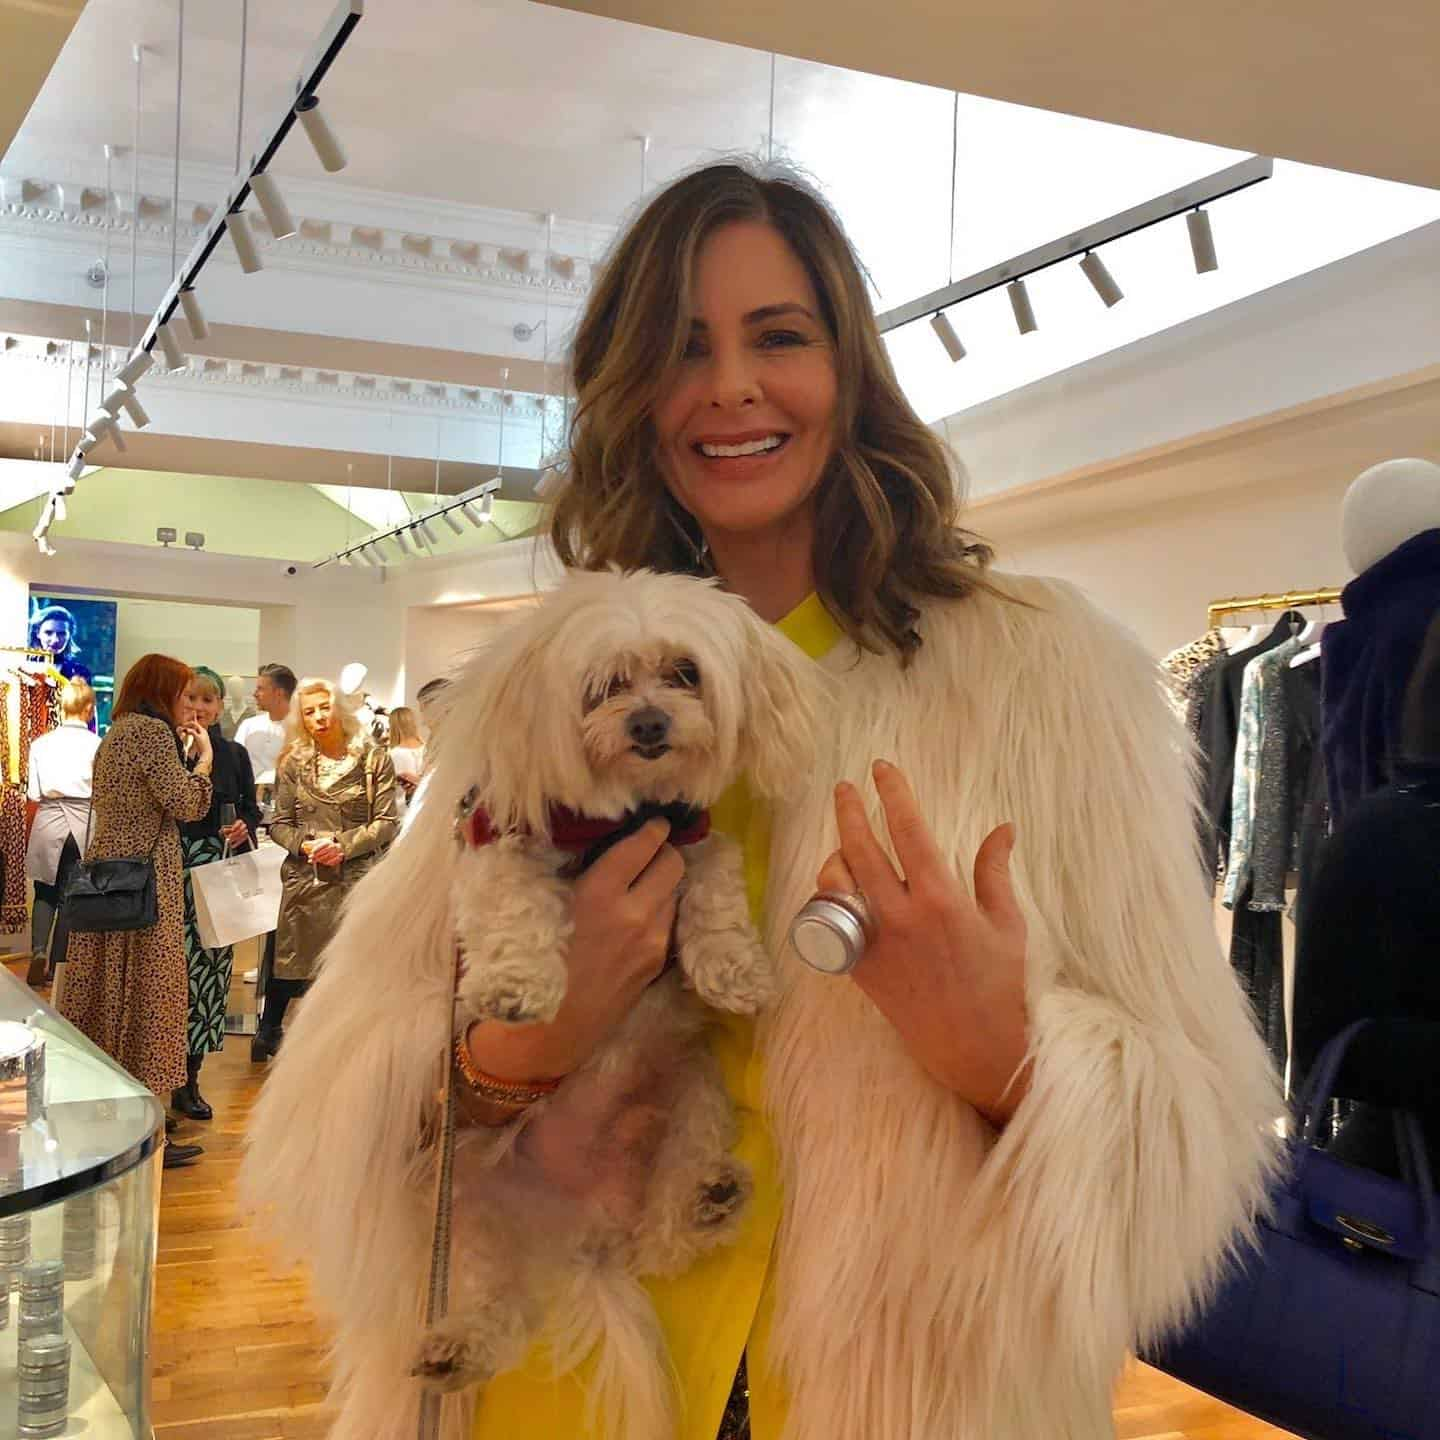 Mr Zipper The Dog About Town - Zipper Meets Trinny Woodhall